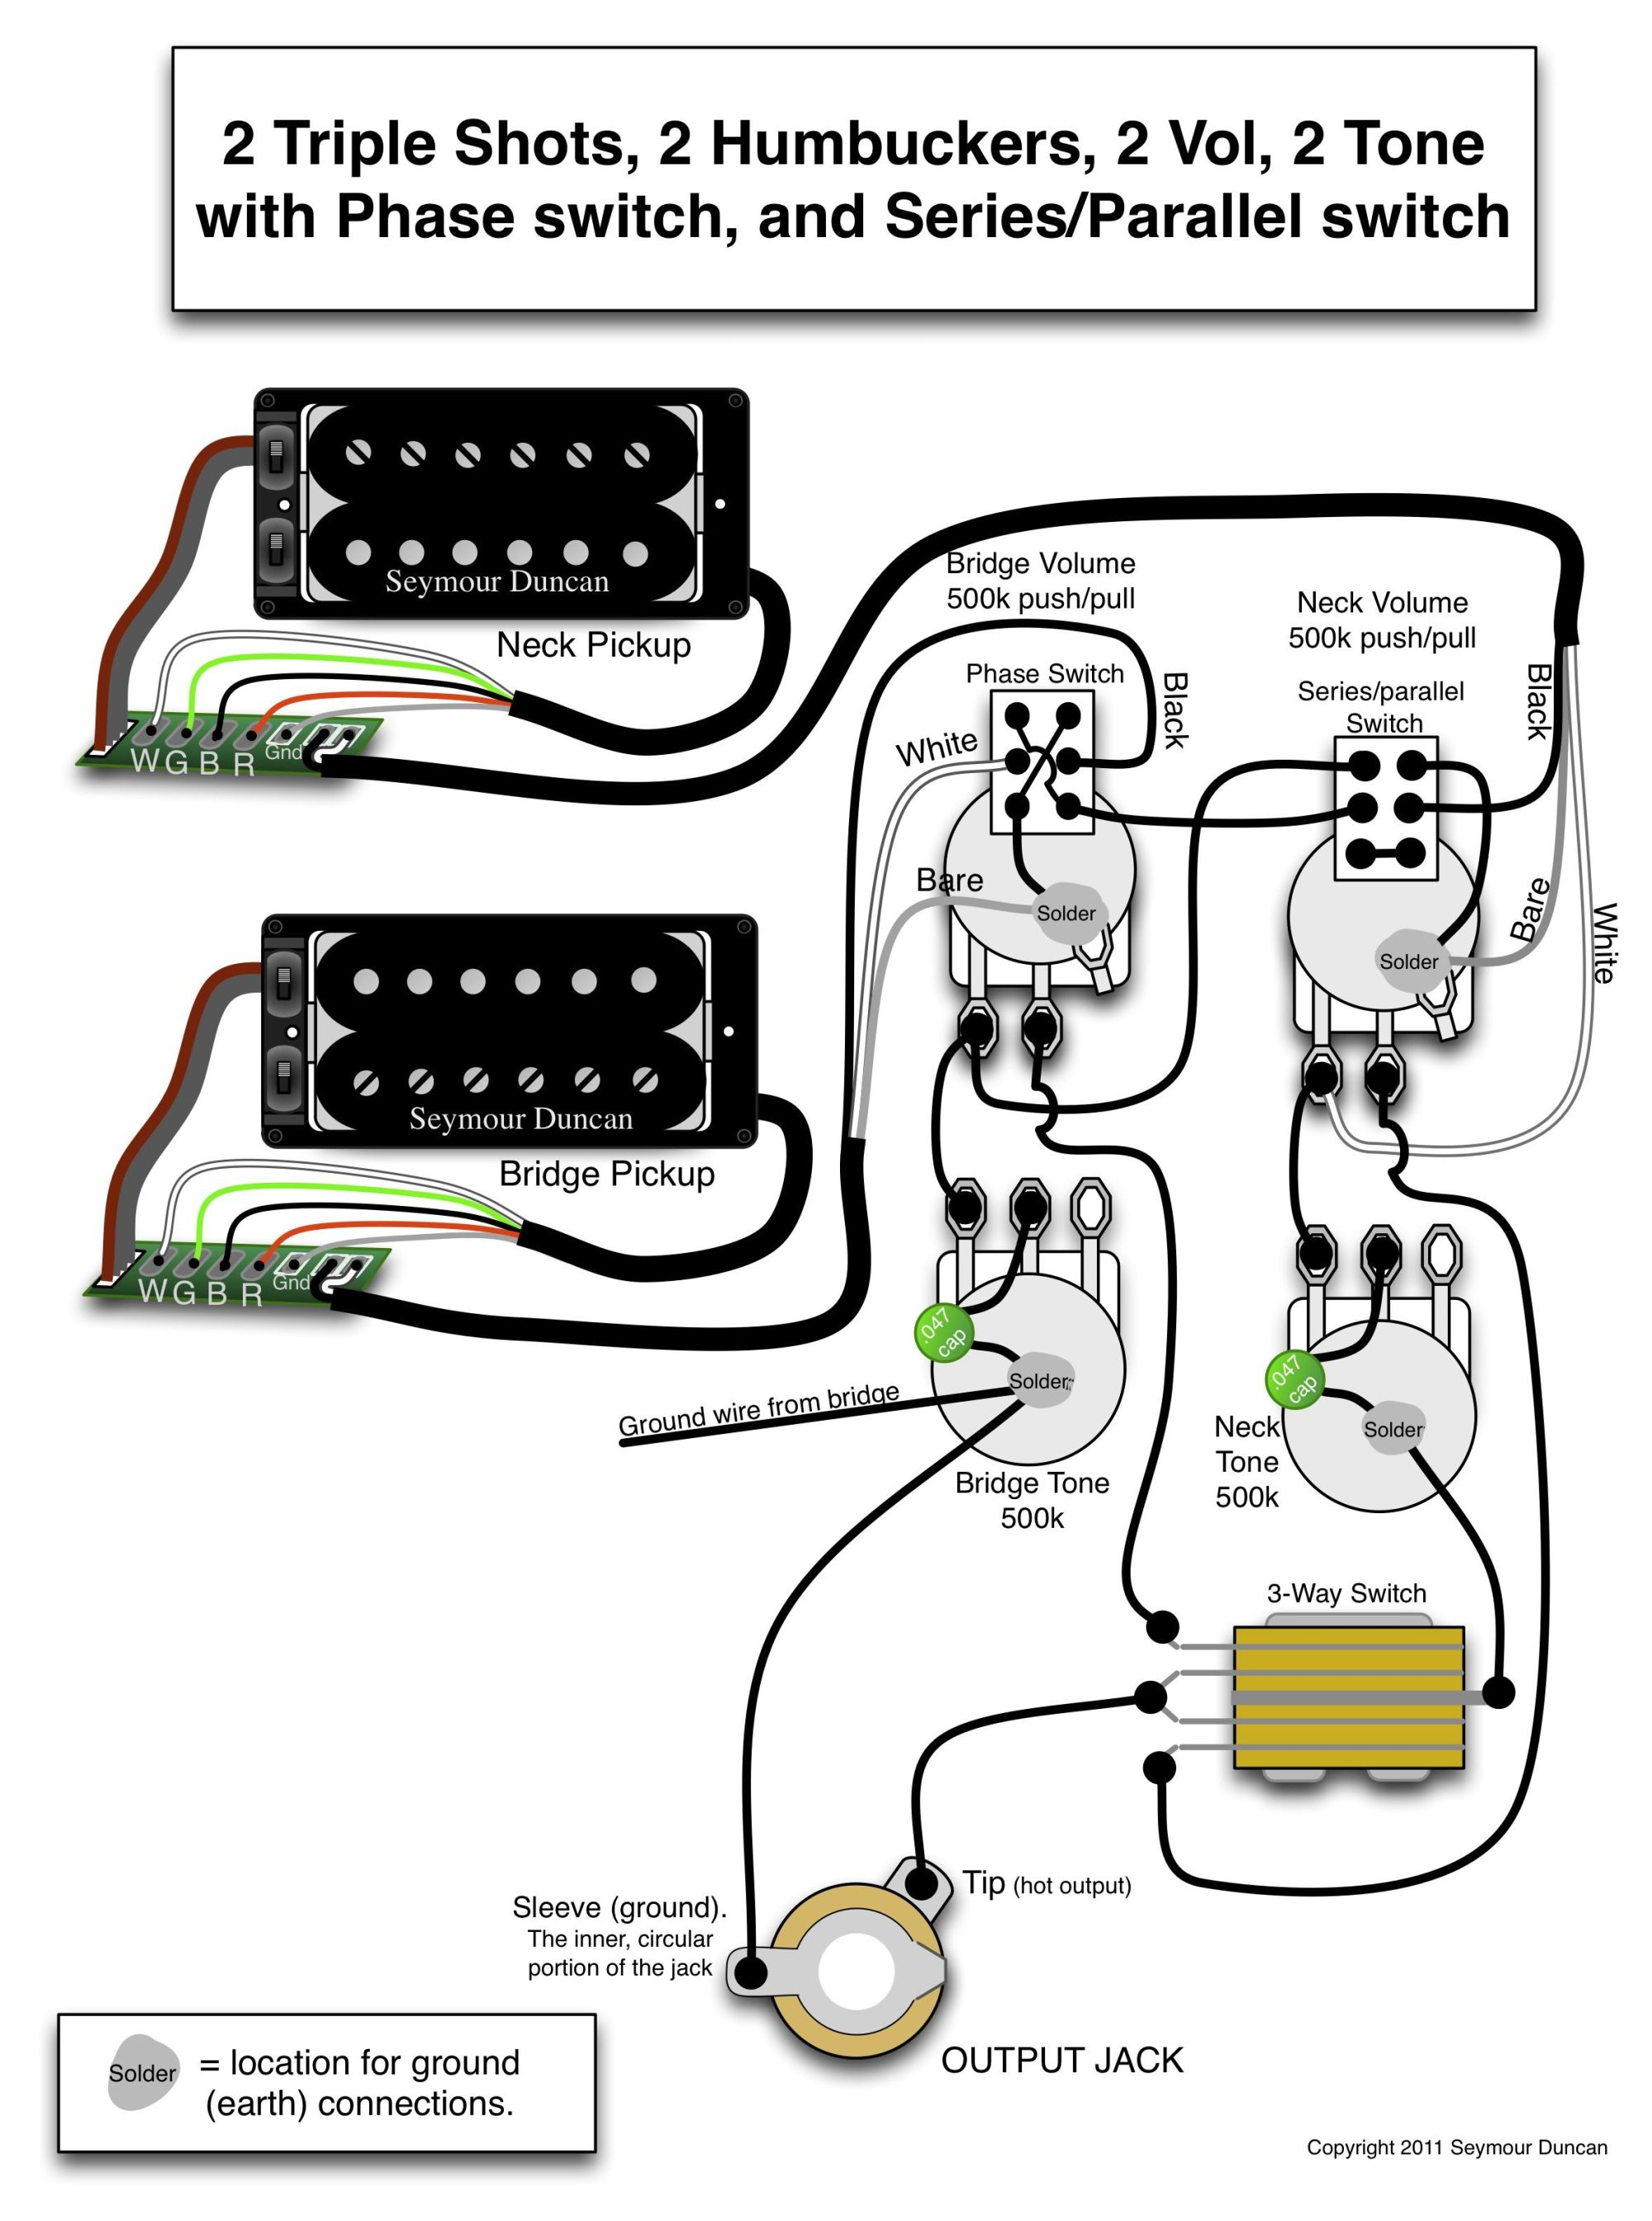 hight resolution of seymour duncan wiring diagram 2 triple shots humbuckers wiring diagram for you